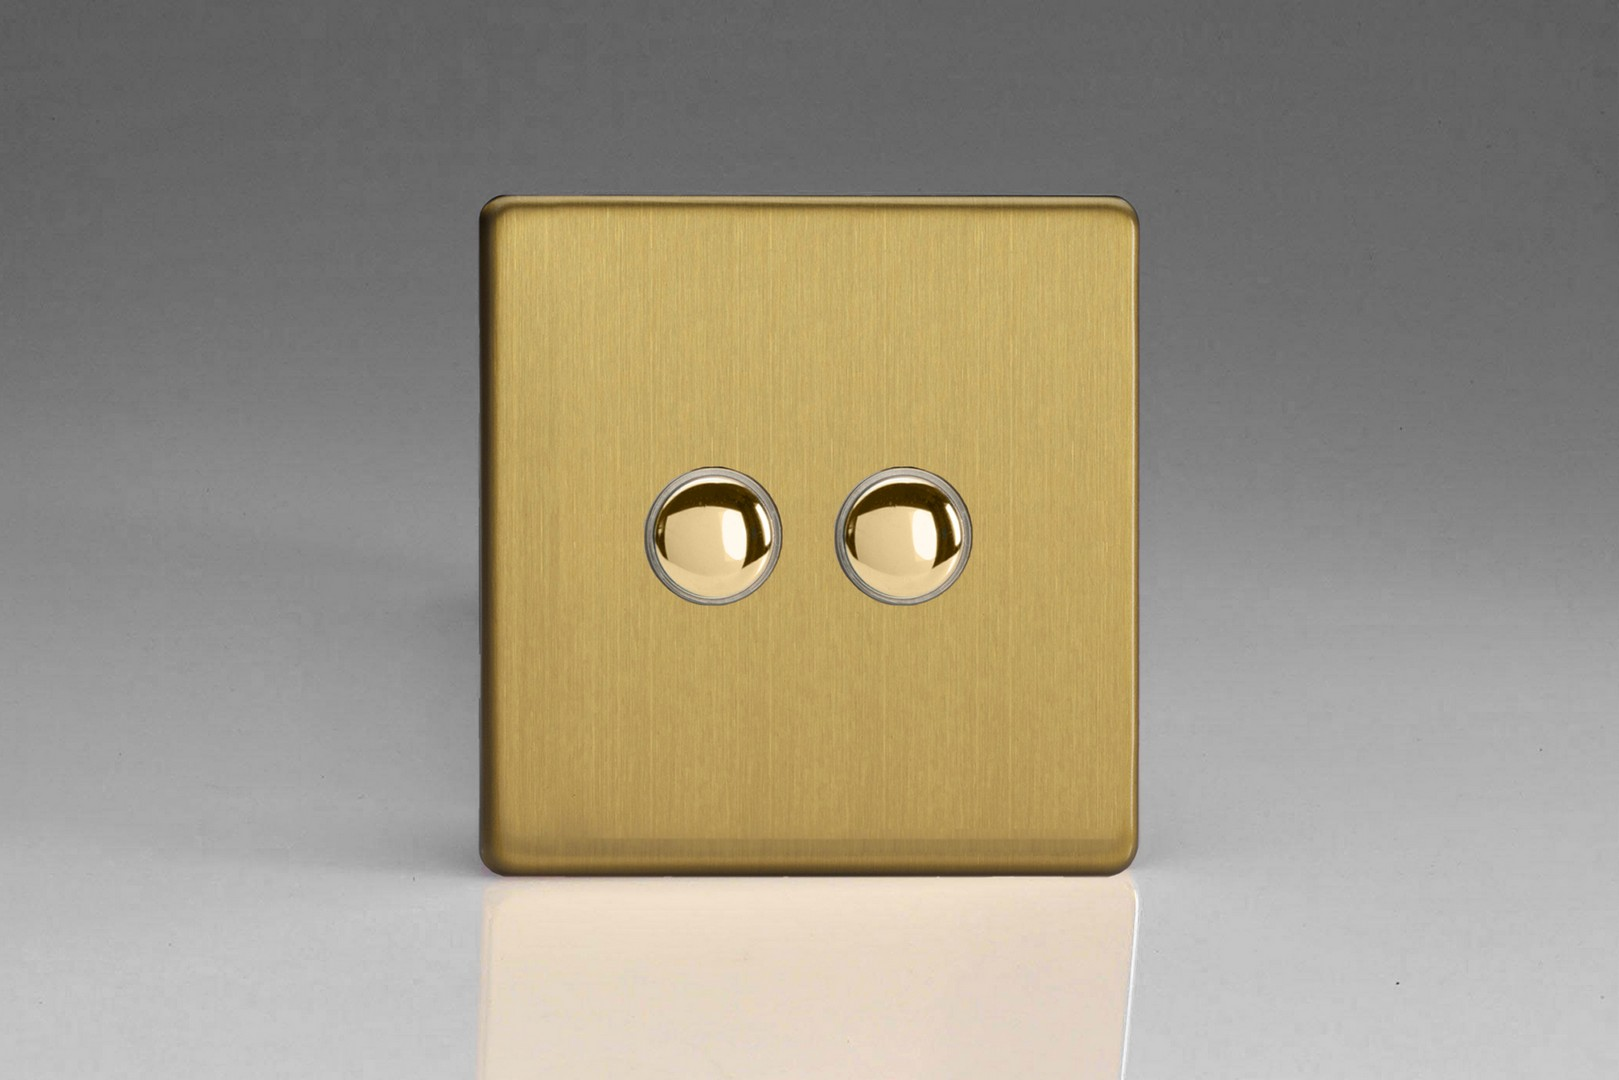 Brushed Brass Impulse Switch